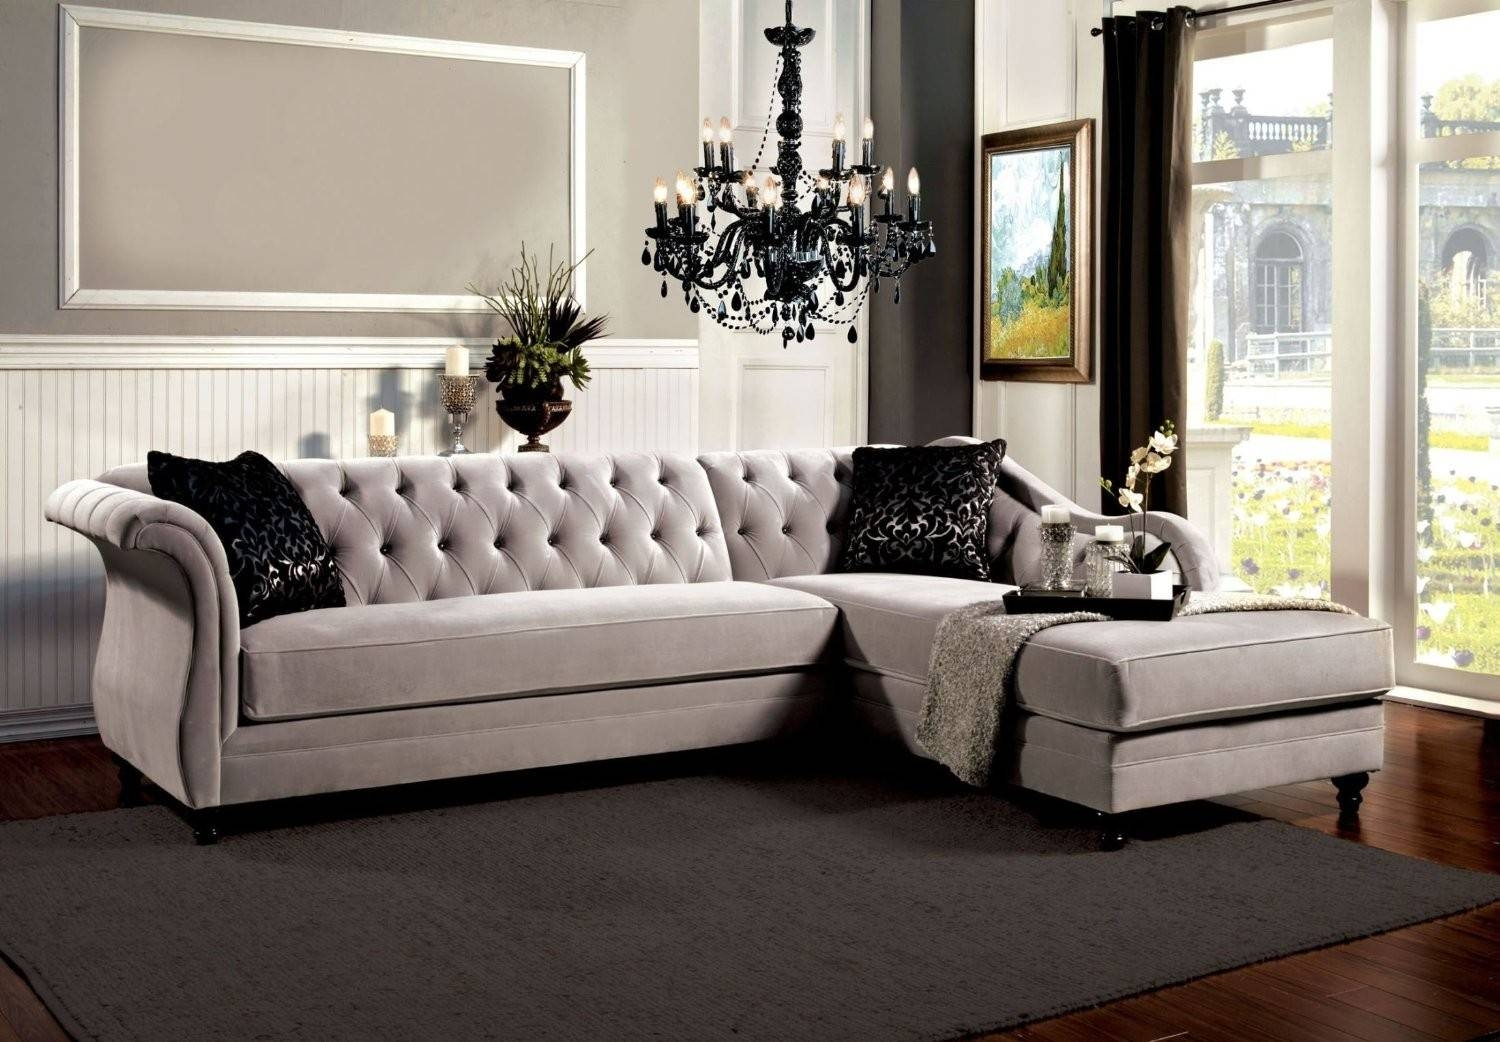 Sofas Center : Grey Tufted Sectional Sofa Fascinating With Chaise regarding Tufted Sectional Sofa With Chaise (Image 25 of 30)